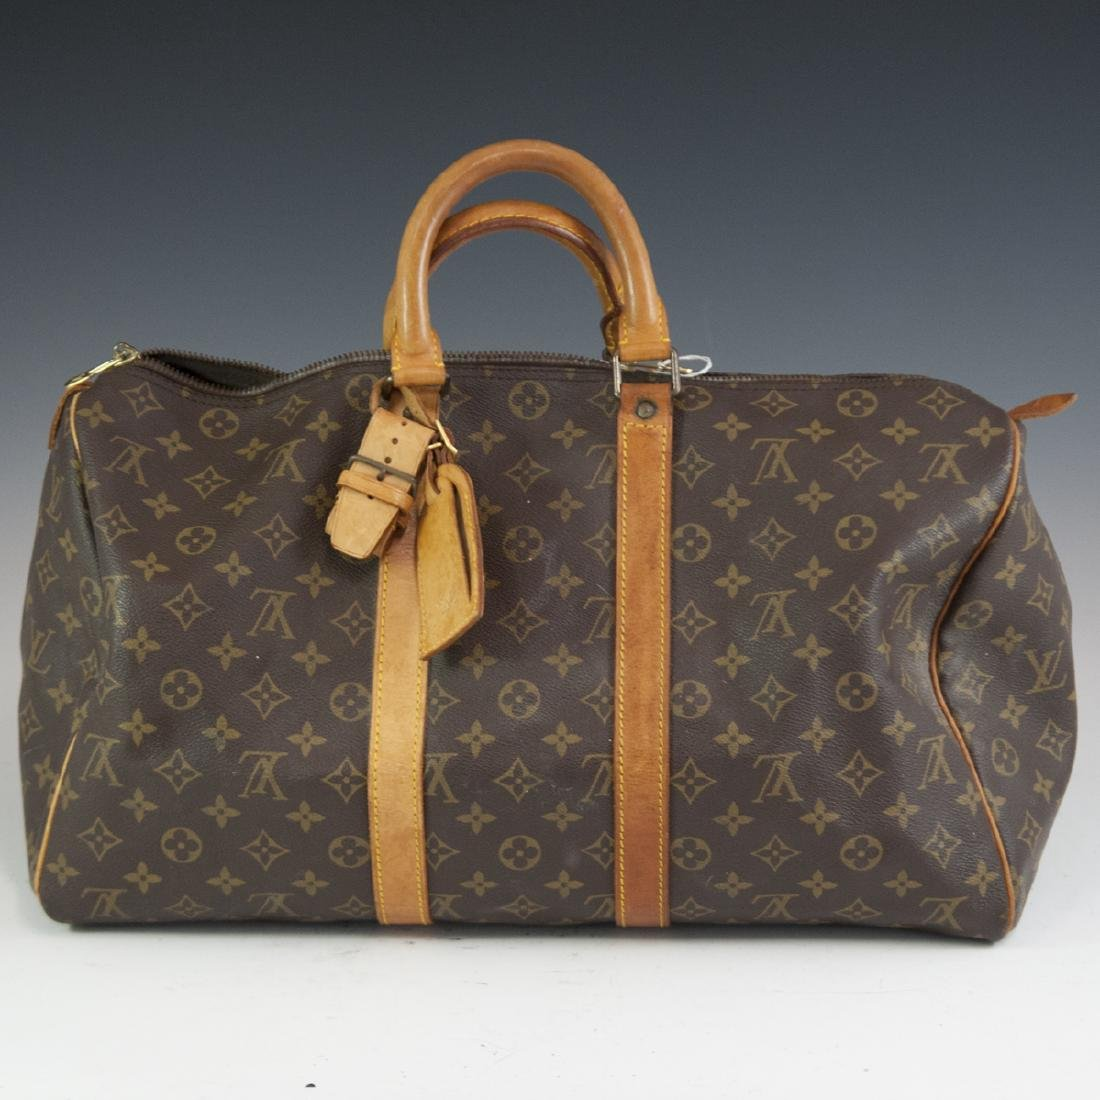 Louis Vuitton Canvas & Leather Keepall Bag